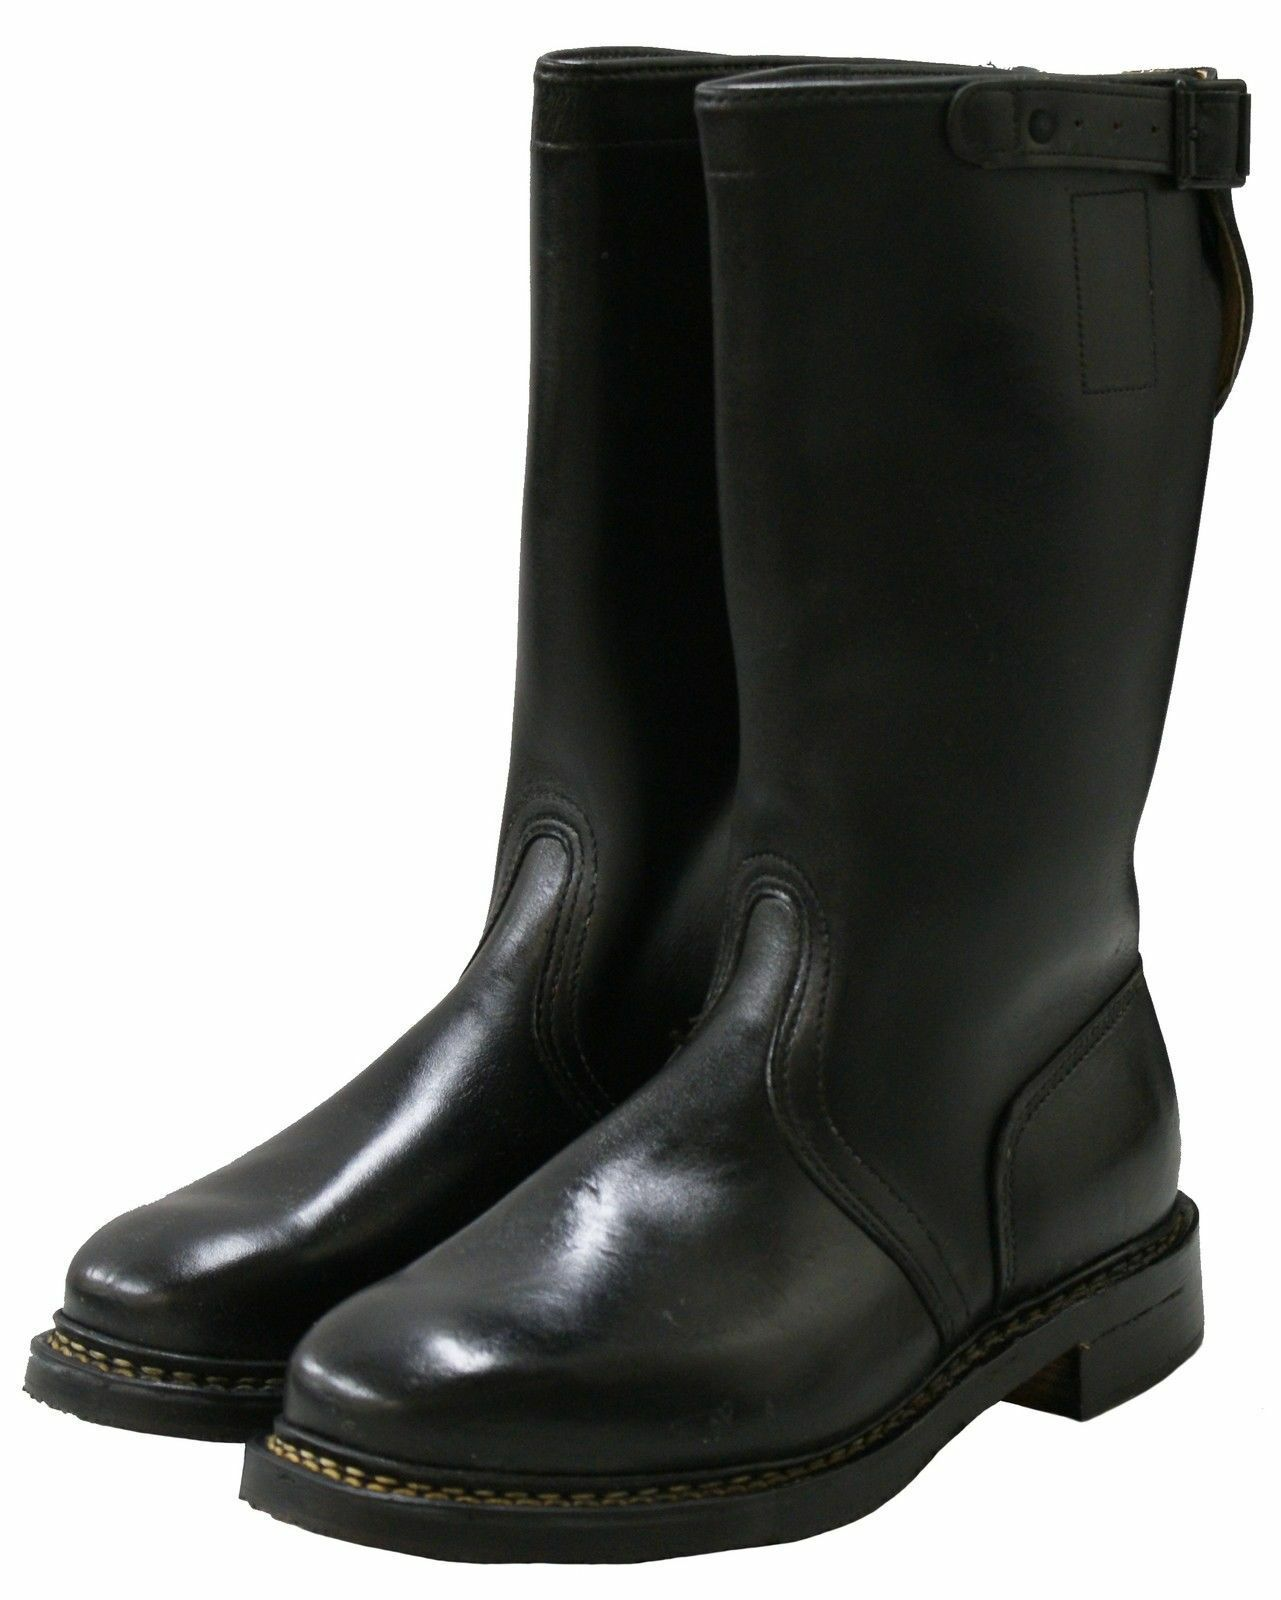 NEW 100% GENUINE GERMAN MILITARY ARMY BLACK LEATHER MOTORBIKE JACK RIDING BOOTS